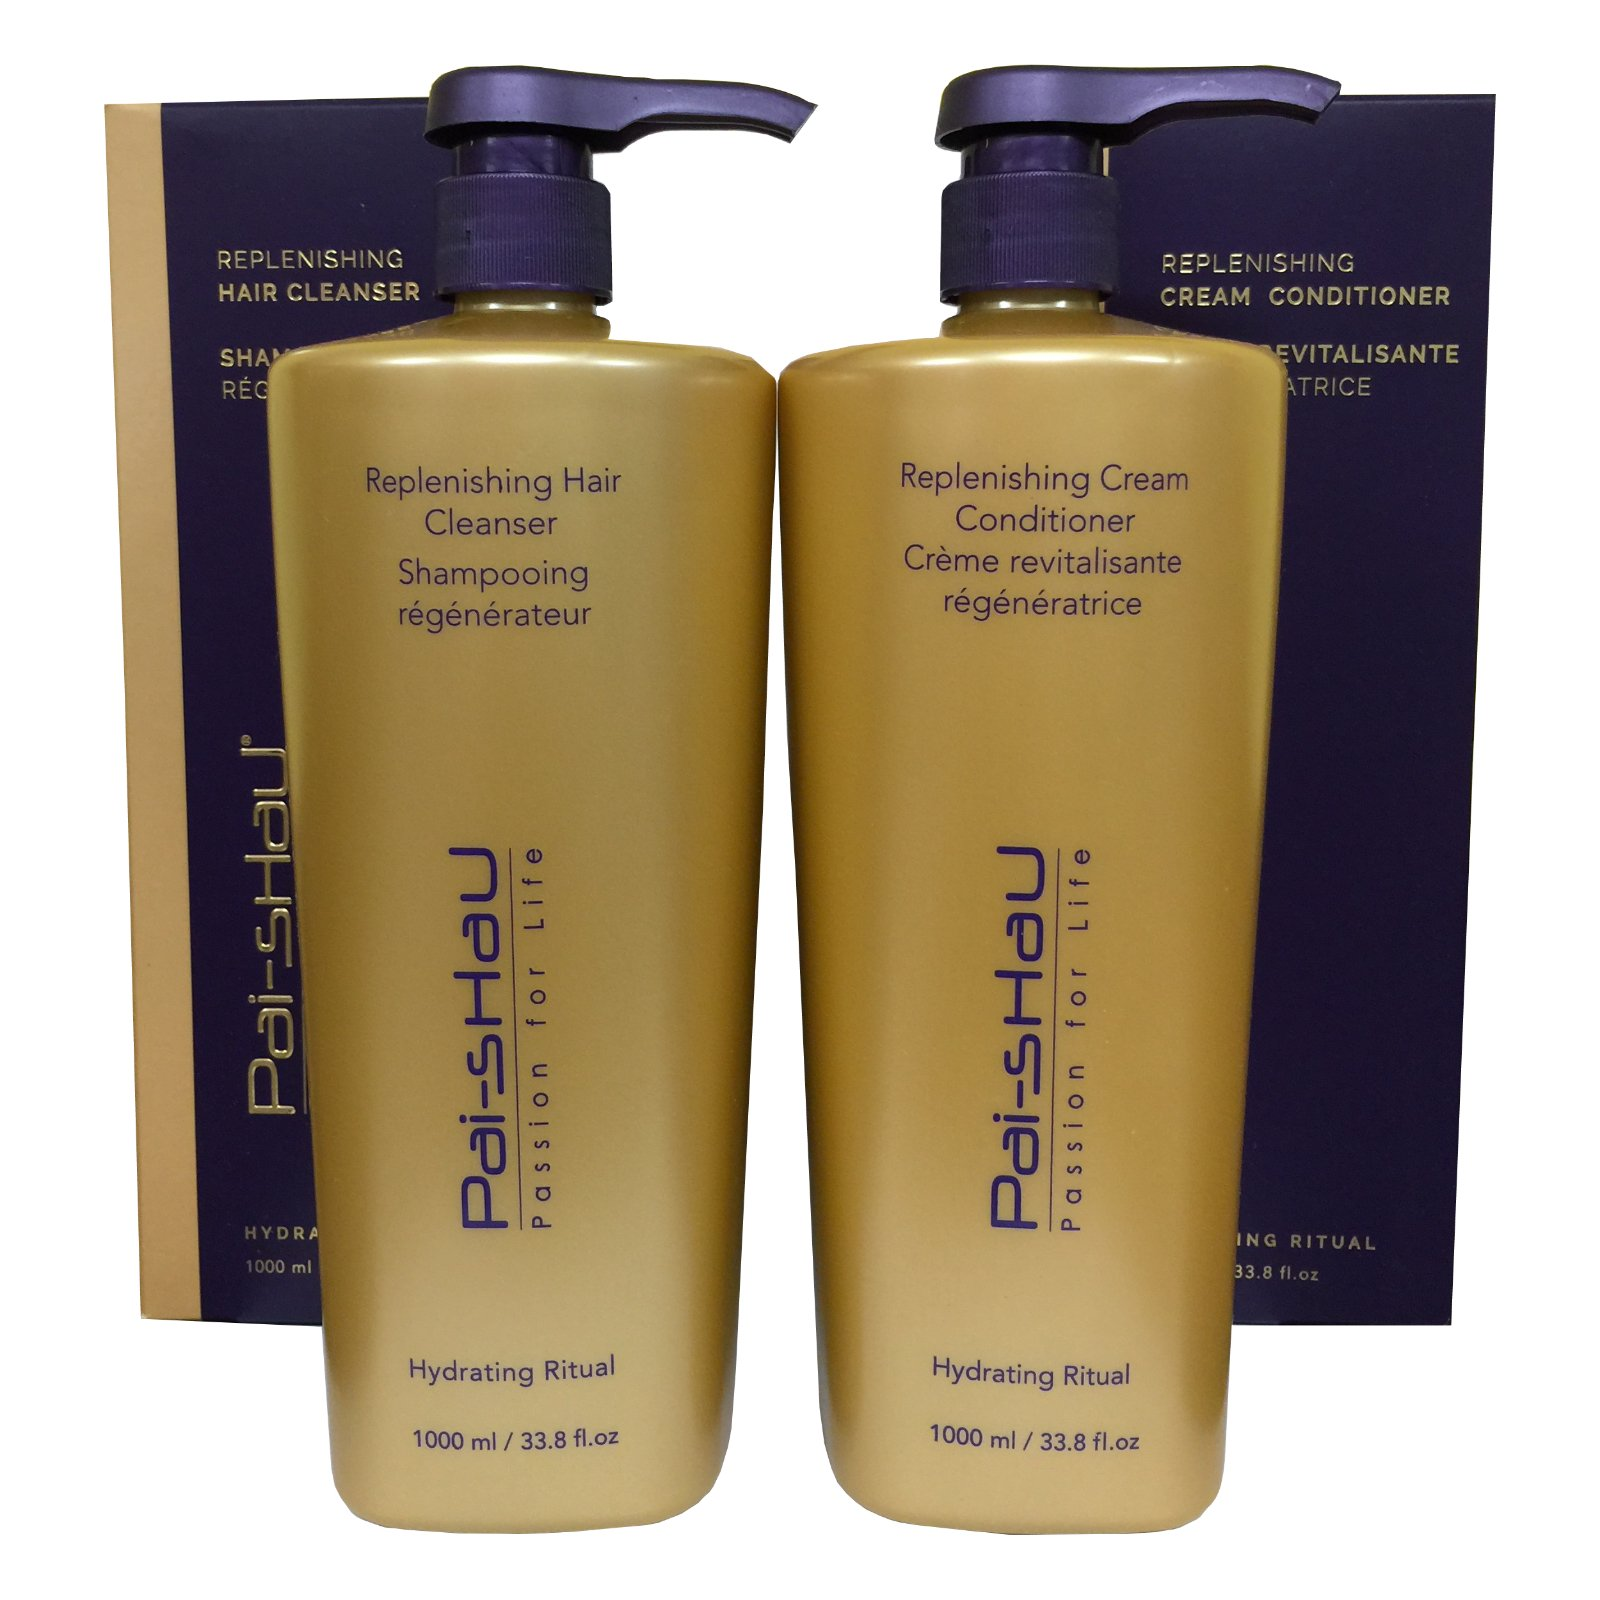 Pai Shau Replenishing Hair Cleanser & Cream Conditioner Liter DUO